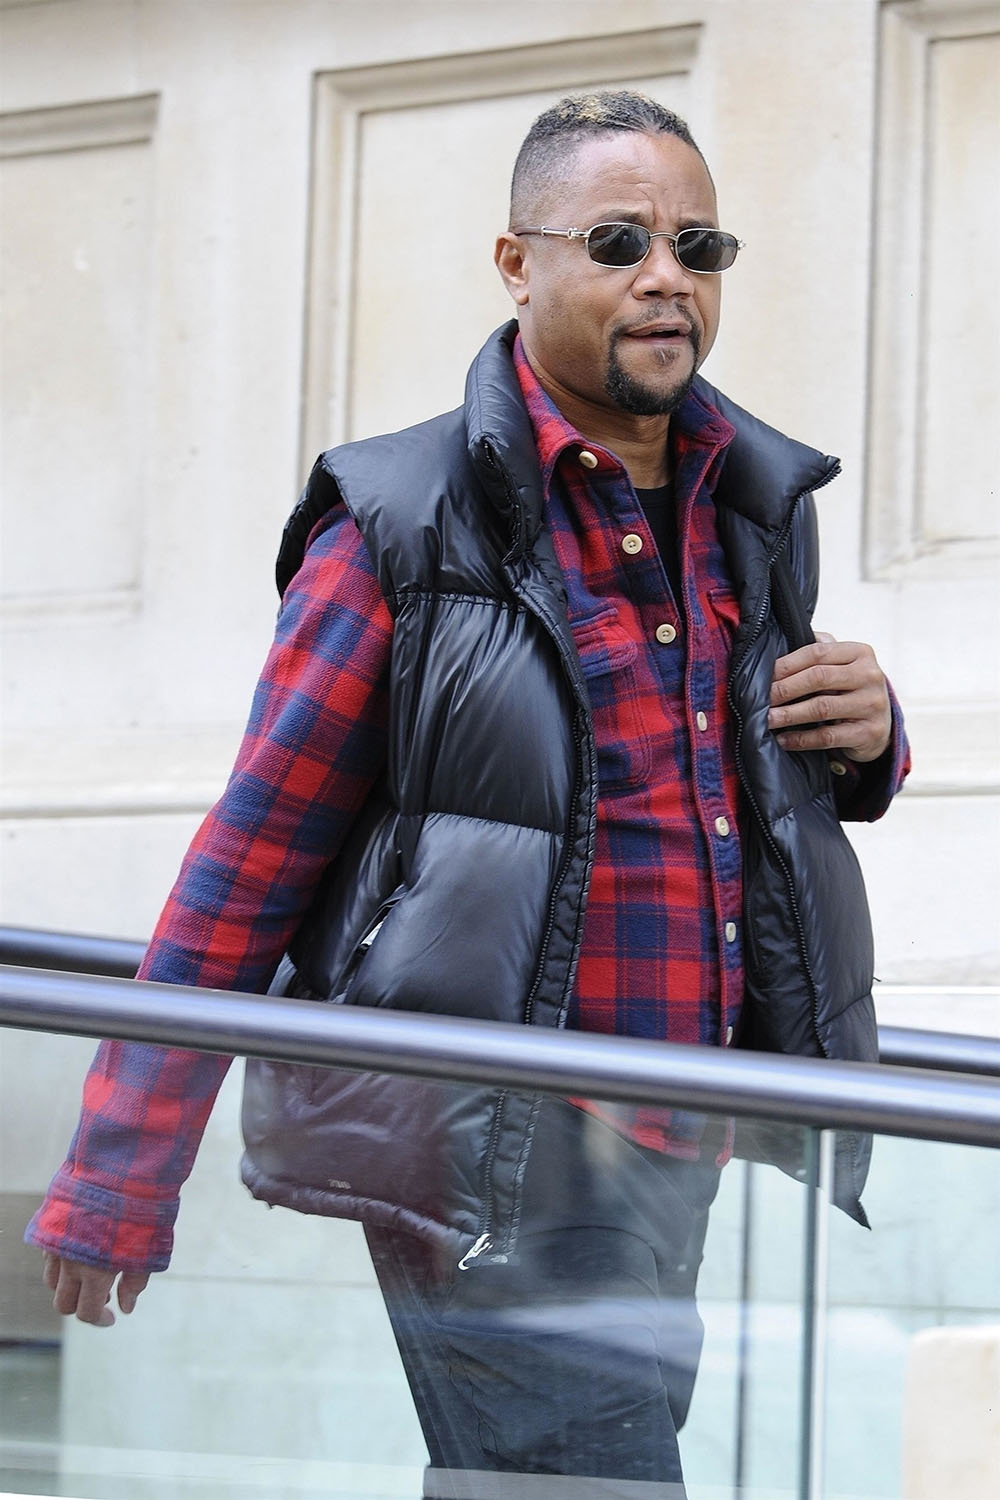 Cuba Gooding Jr Amp Mindy Kaling Are Seen In London Sandra